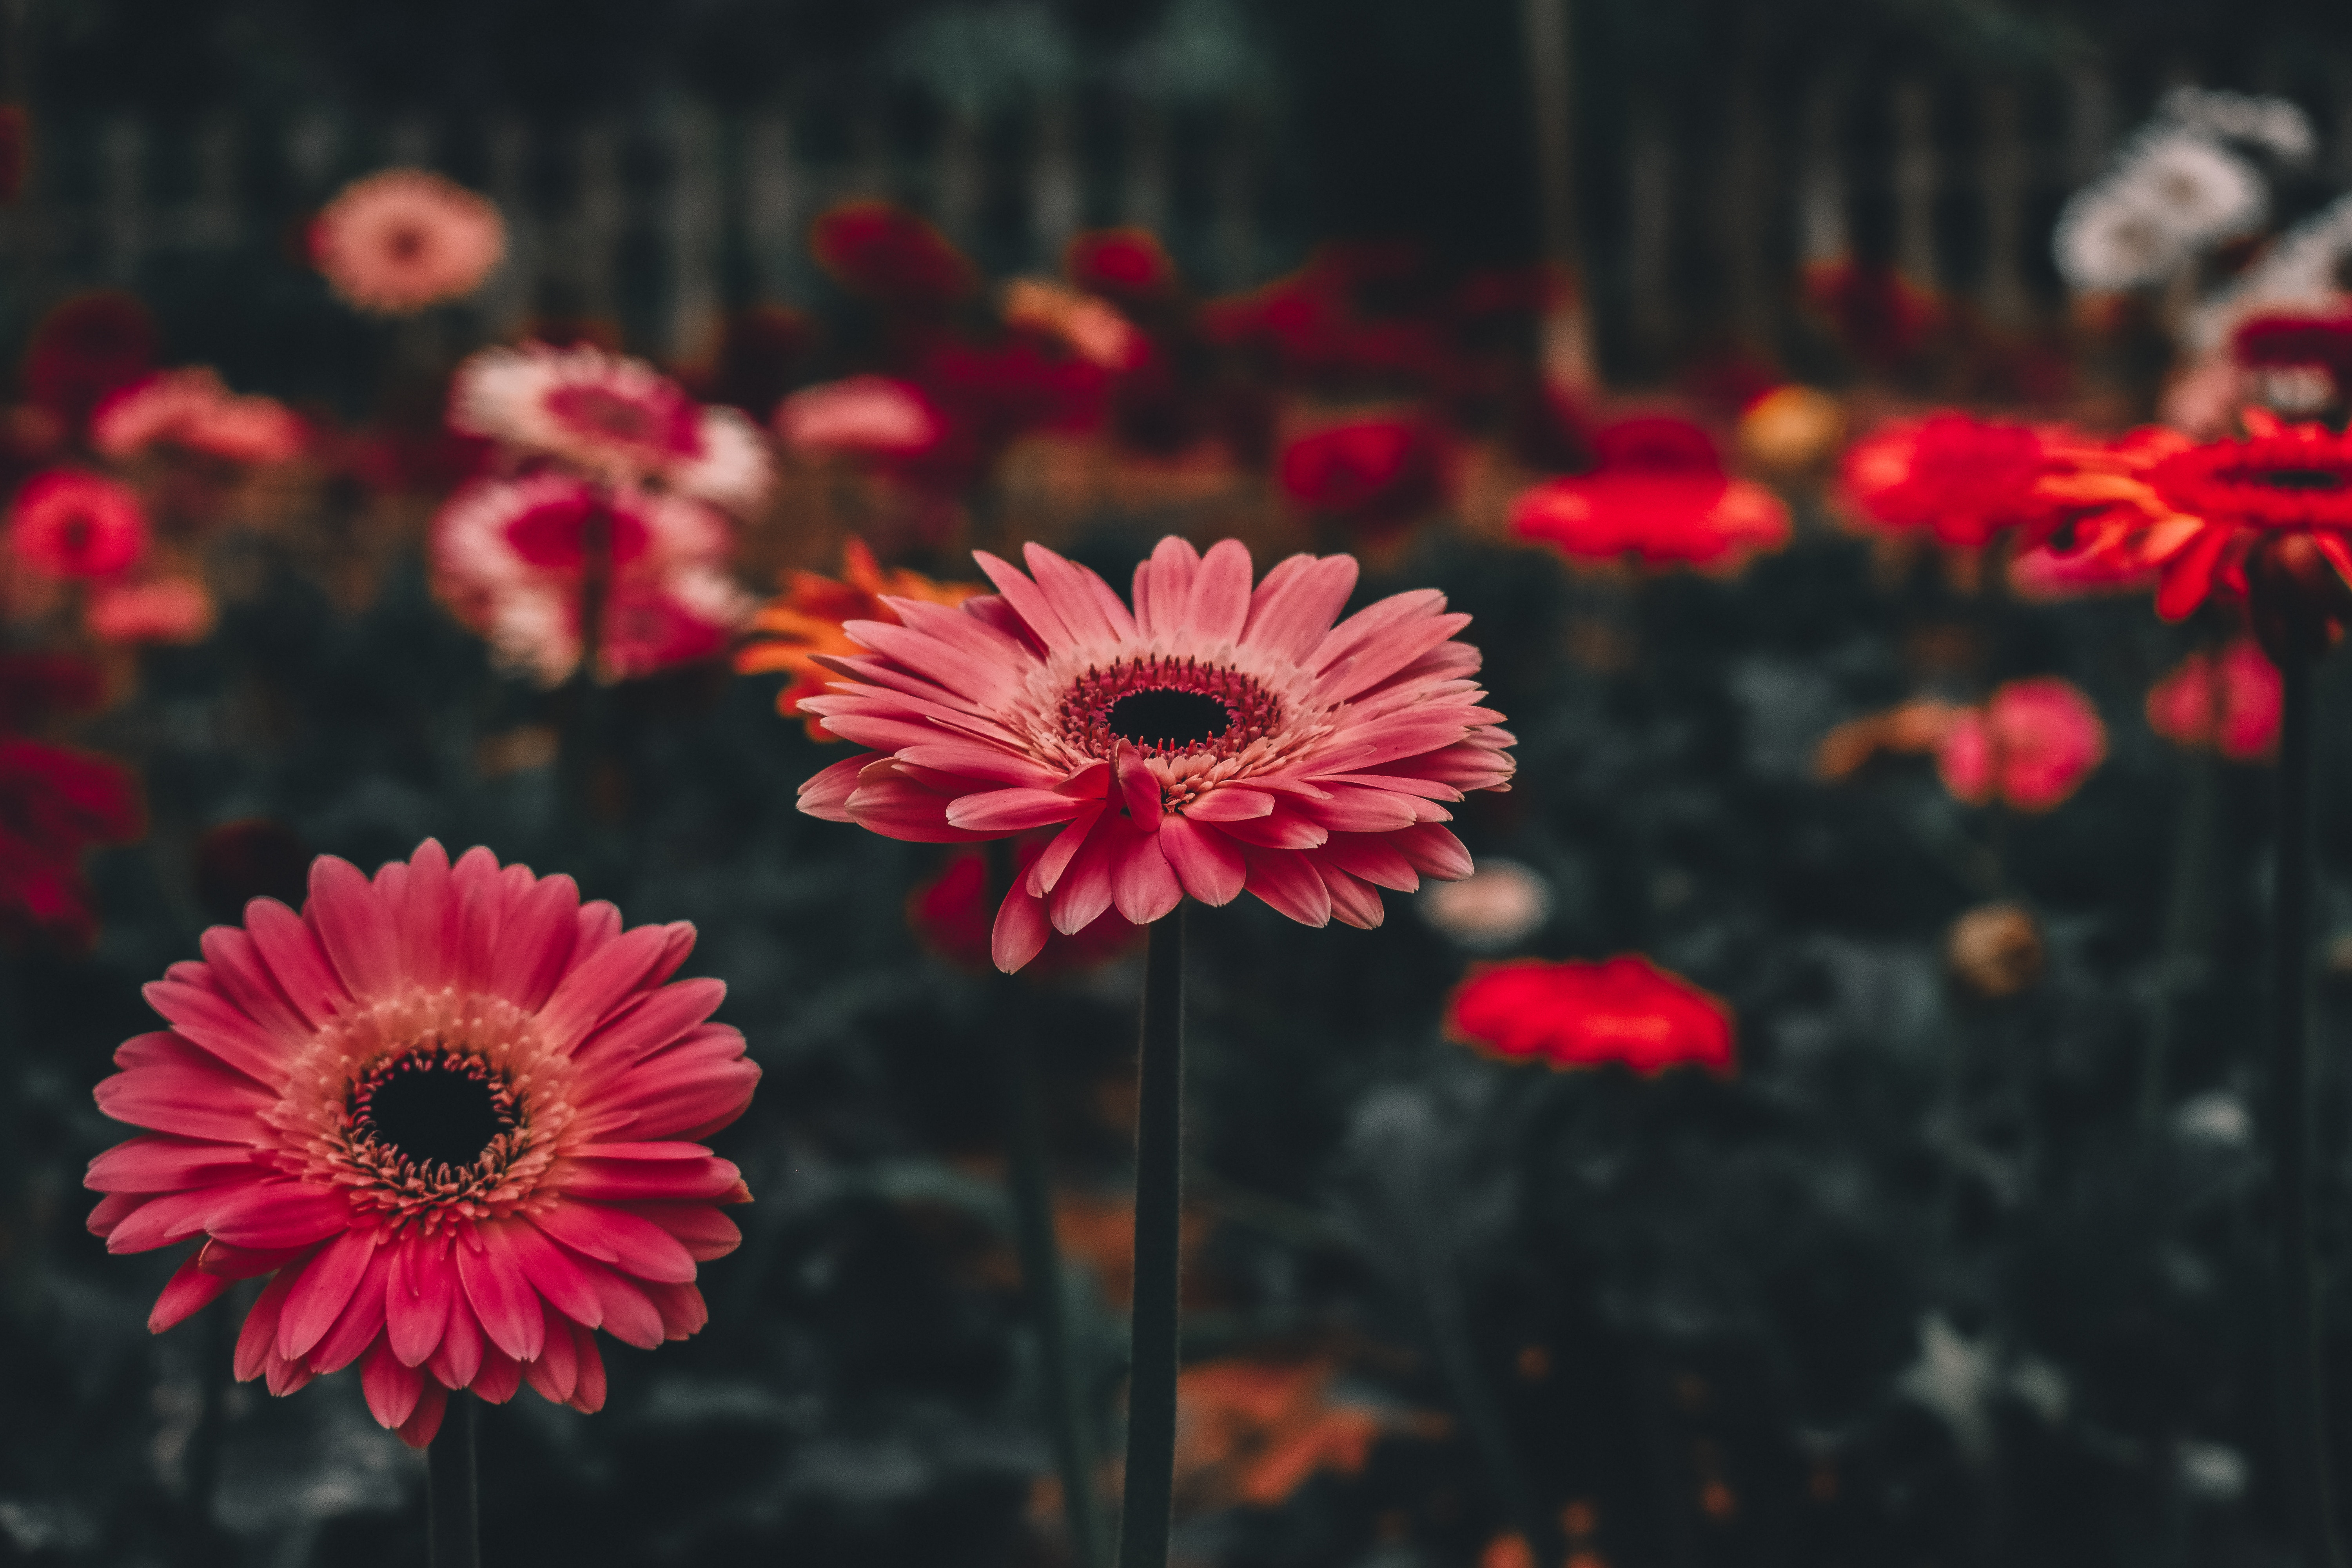 156688 download wallpaper Flower, Flowers, Gerbera, Stem, Stalk screensavers and pictures for free